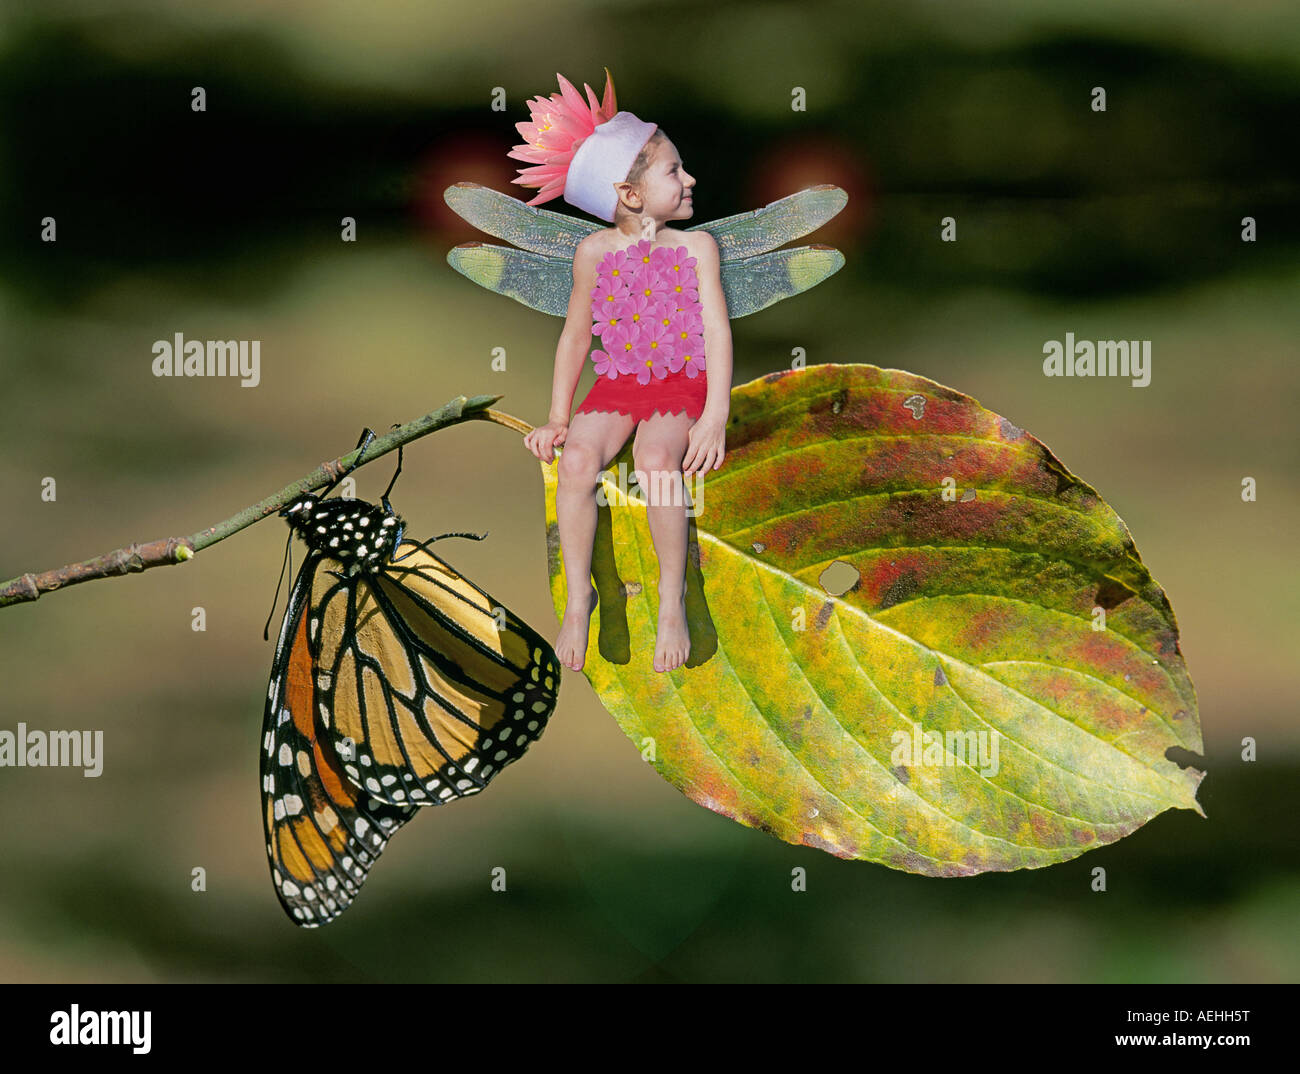 A flower fairy on a on a branch with a monarch butterfly - Stock Image